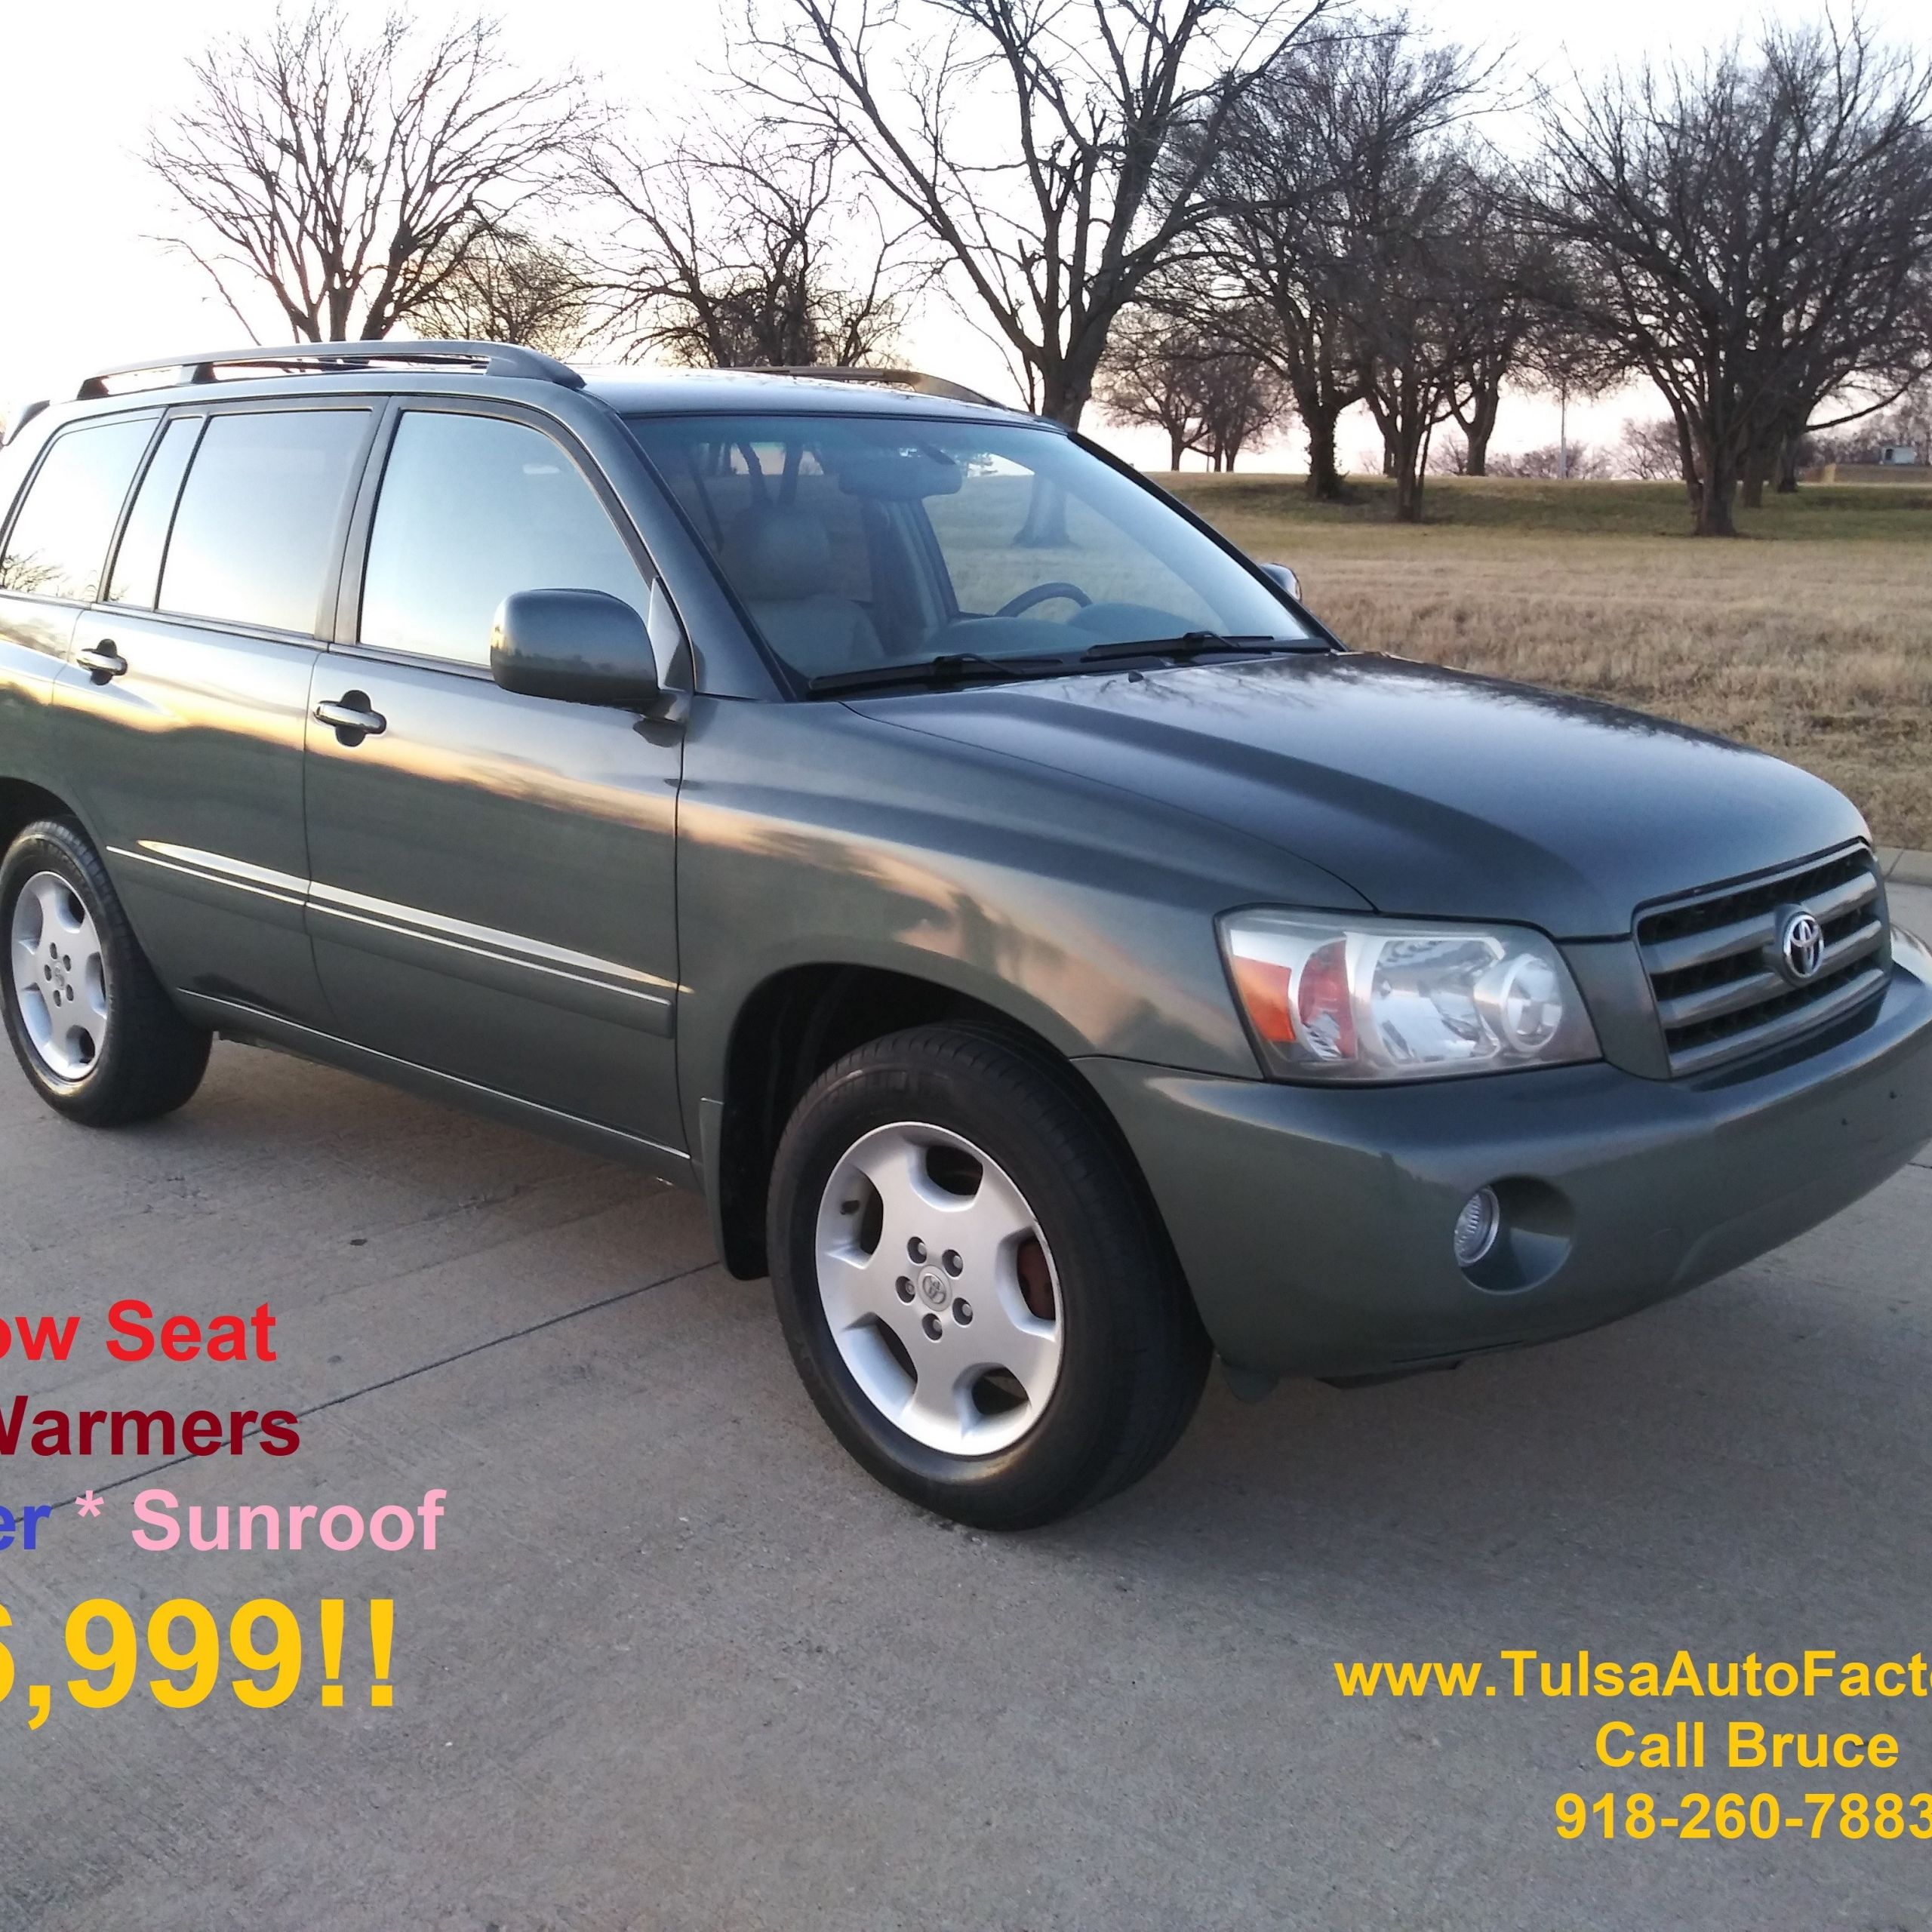 Cars for Sale Near Me with 3rd Row Seating Inspirational 2004 toyota Highlander 4dr V6